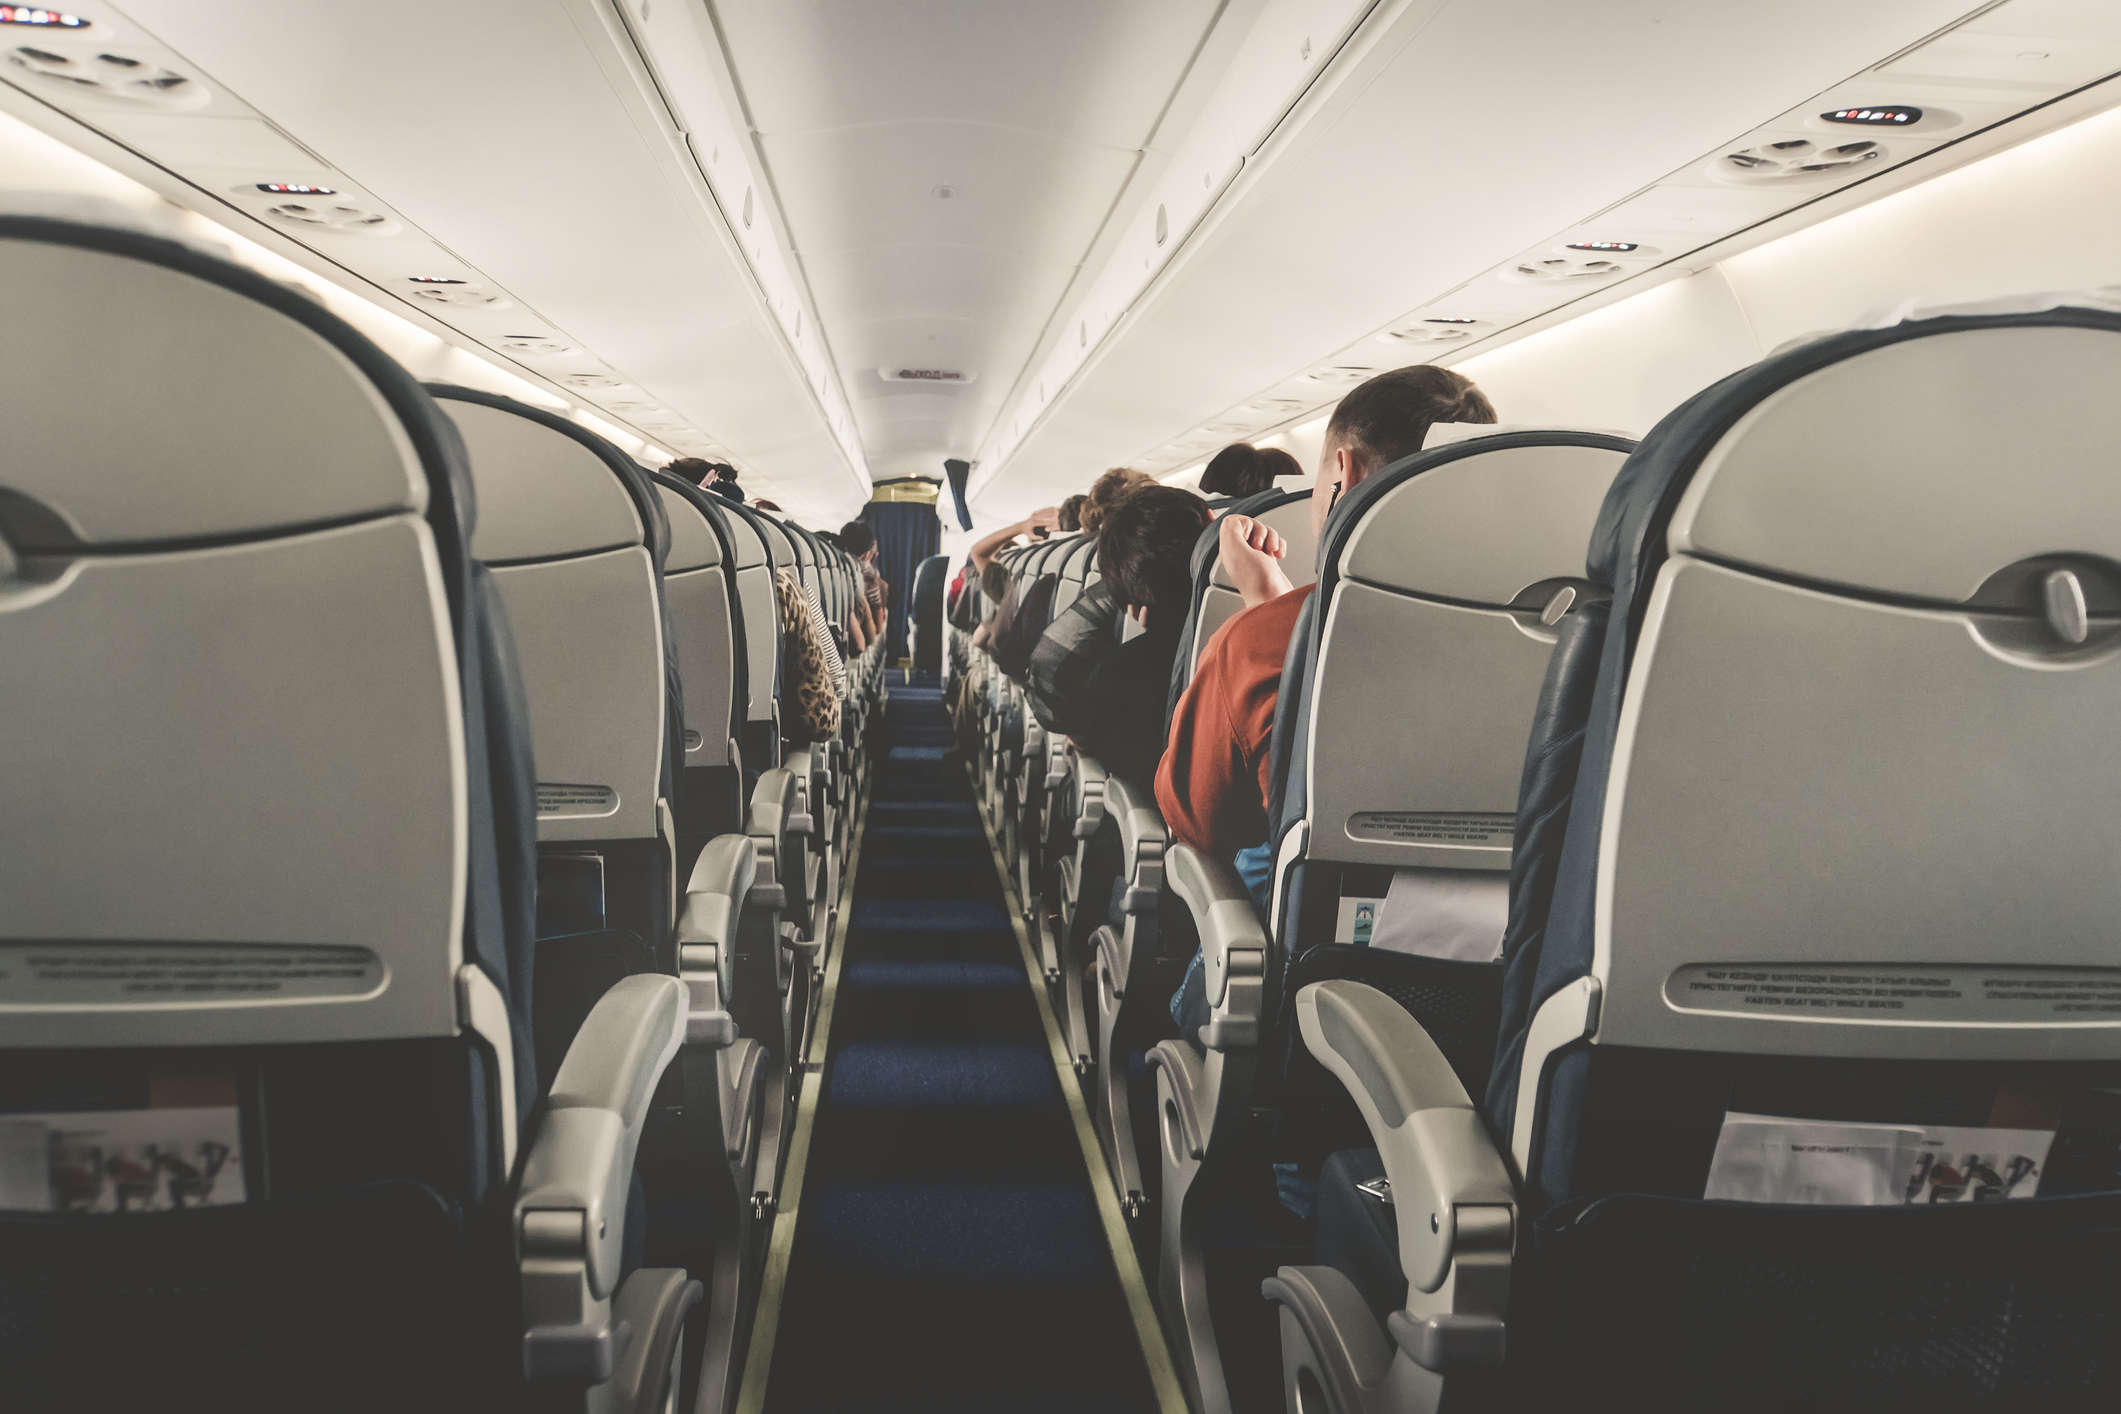 Aviation industry opens up slowly, and steadily